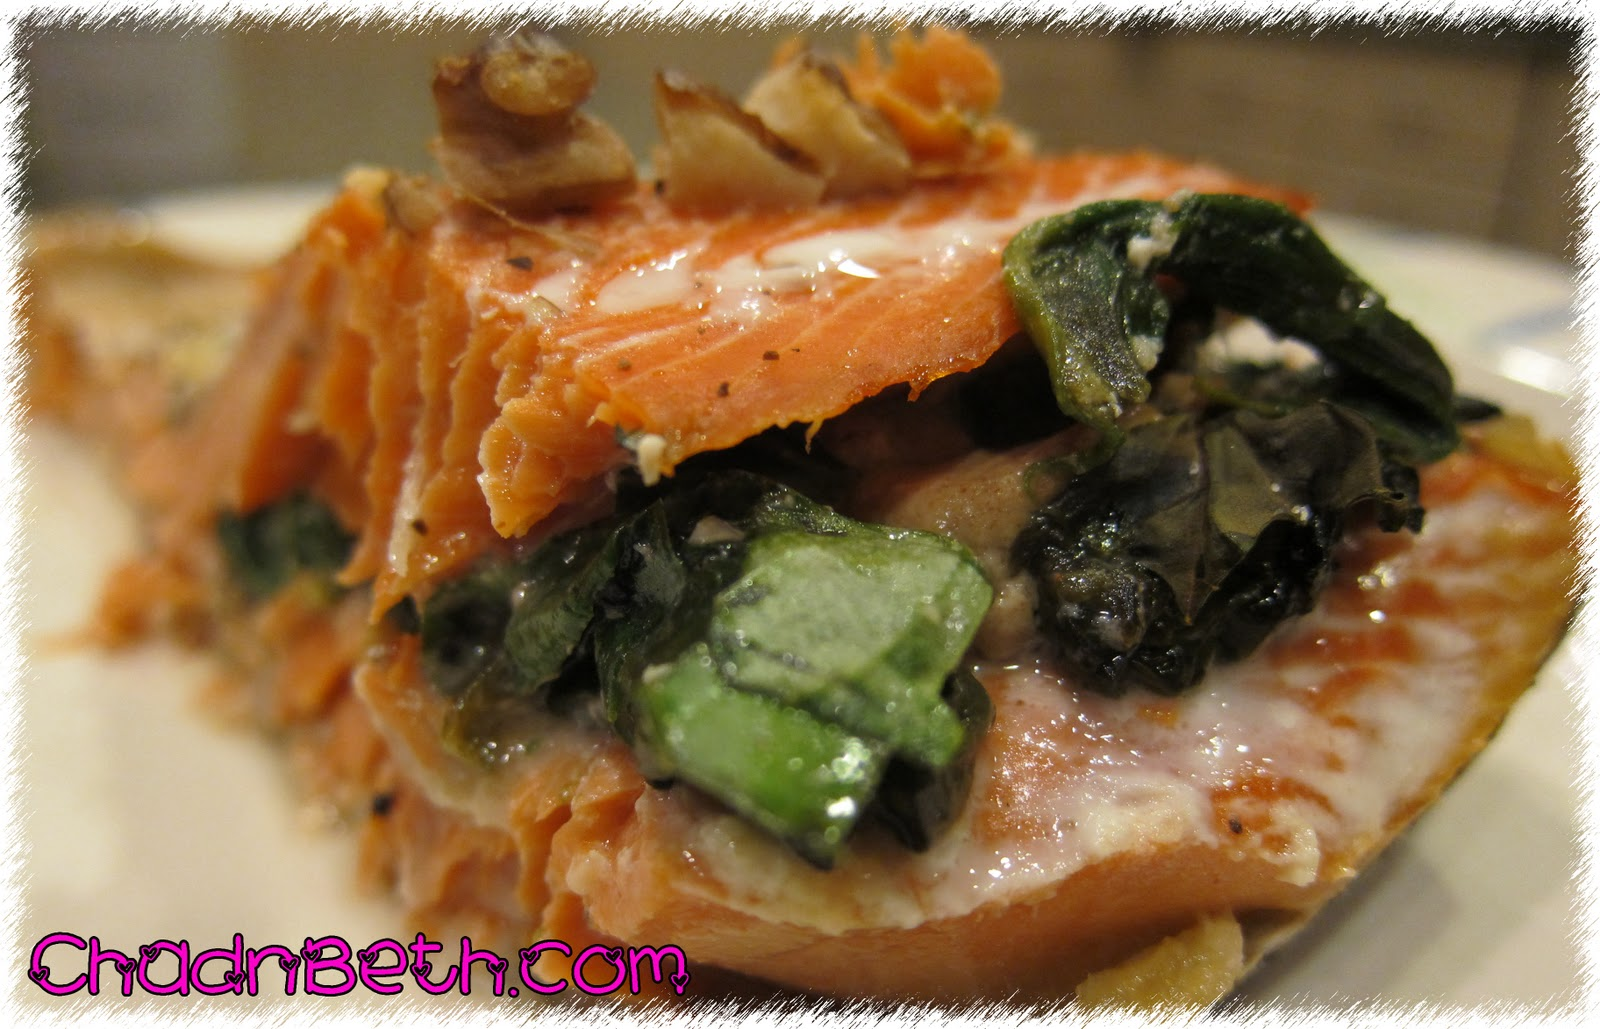 Chad and Beth: Spinach-Stuffed Baked Salmon